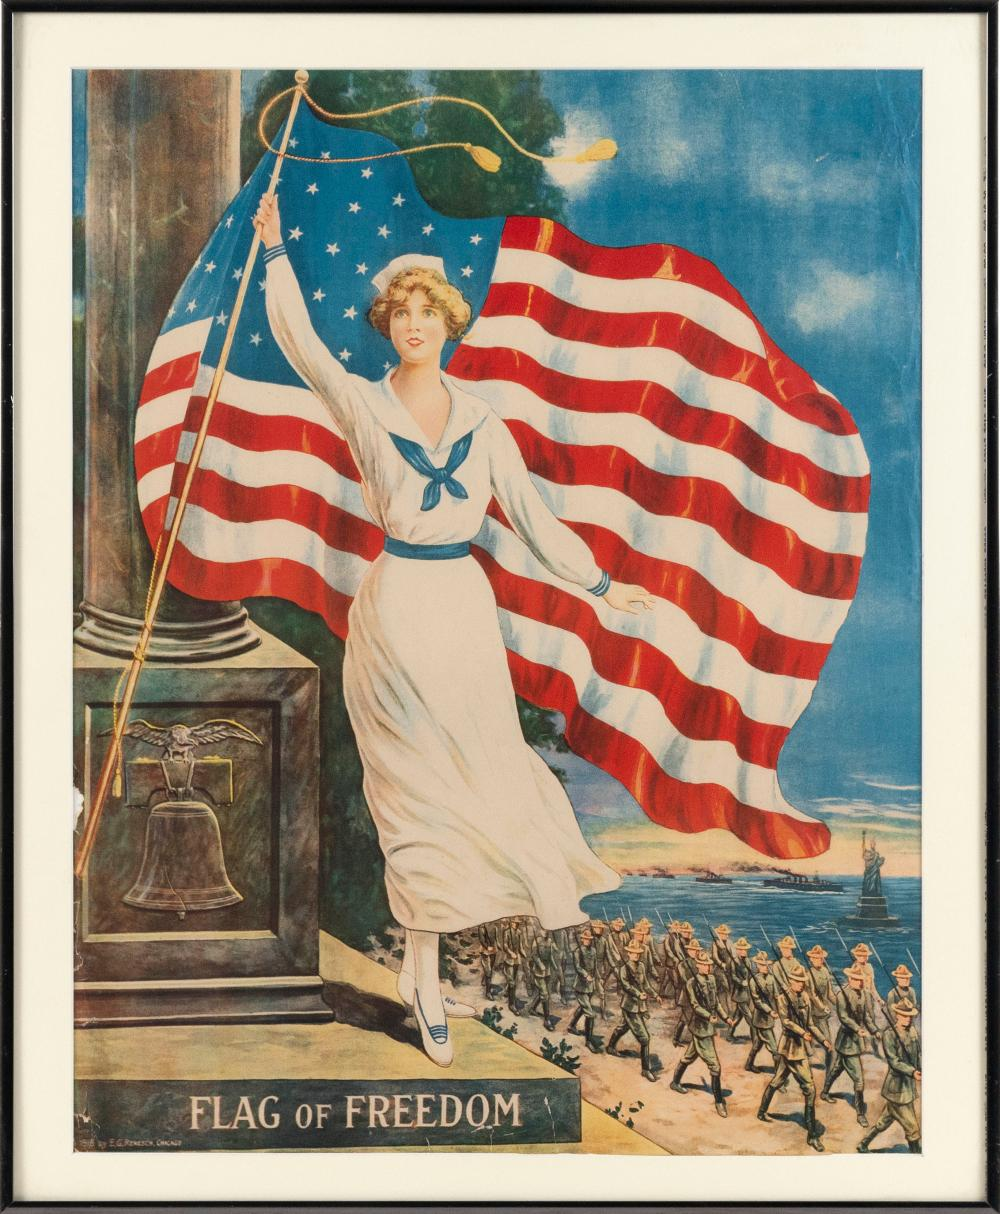 """""""FLAG OF FREEDOM"""" WORLD WAR I POSTER By E.G. Renesch. Depicts a woman waving an American flag as soldiers march by, with the Statue..."""